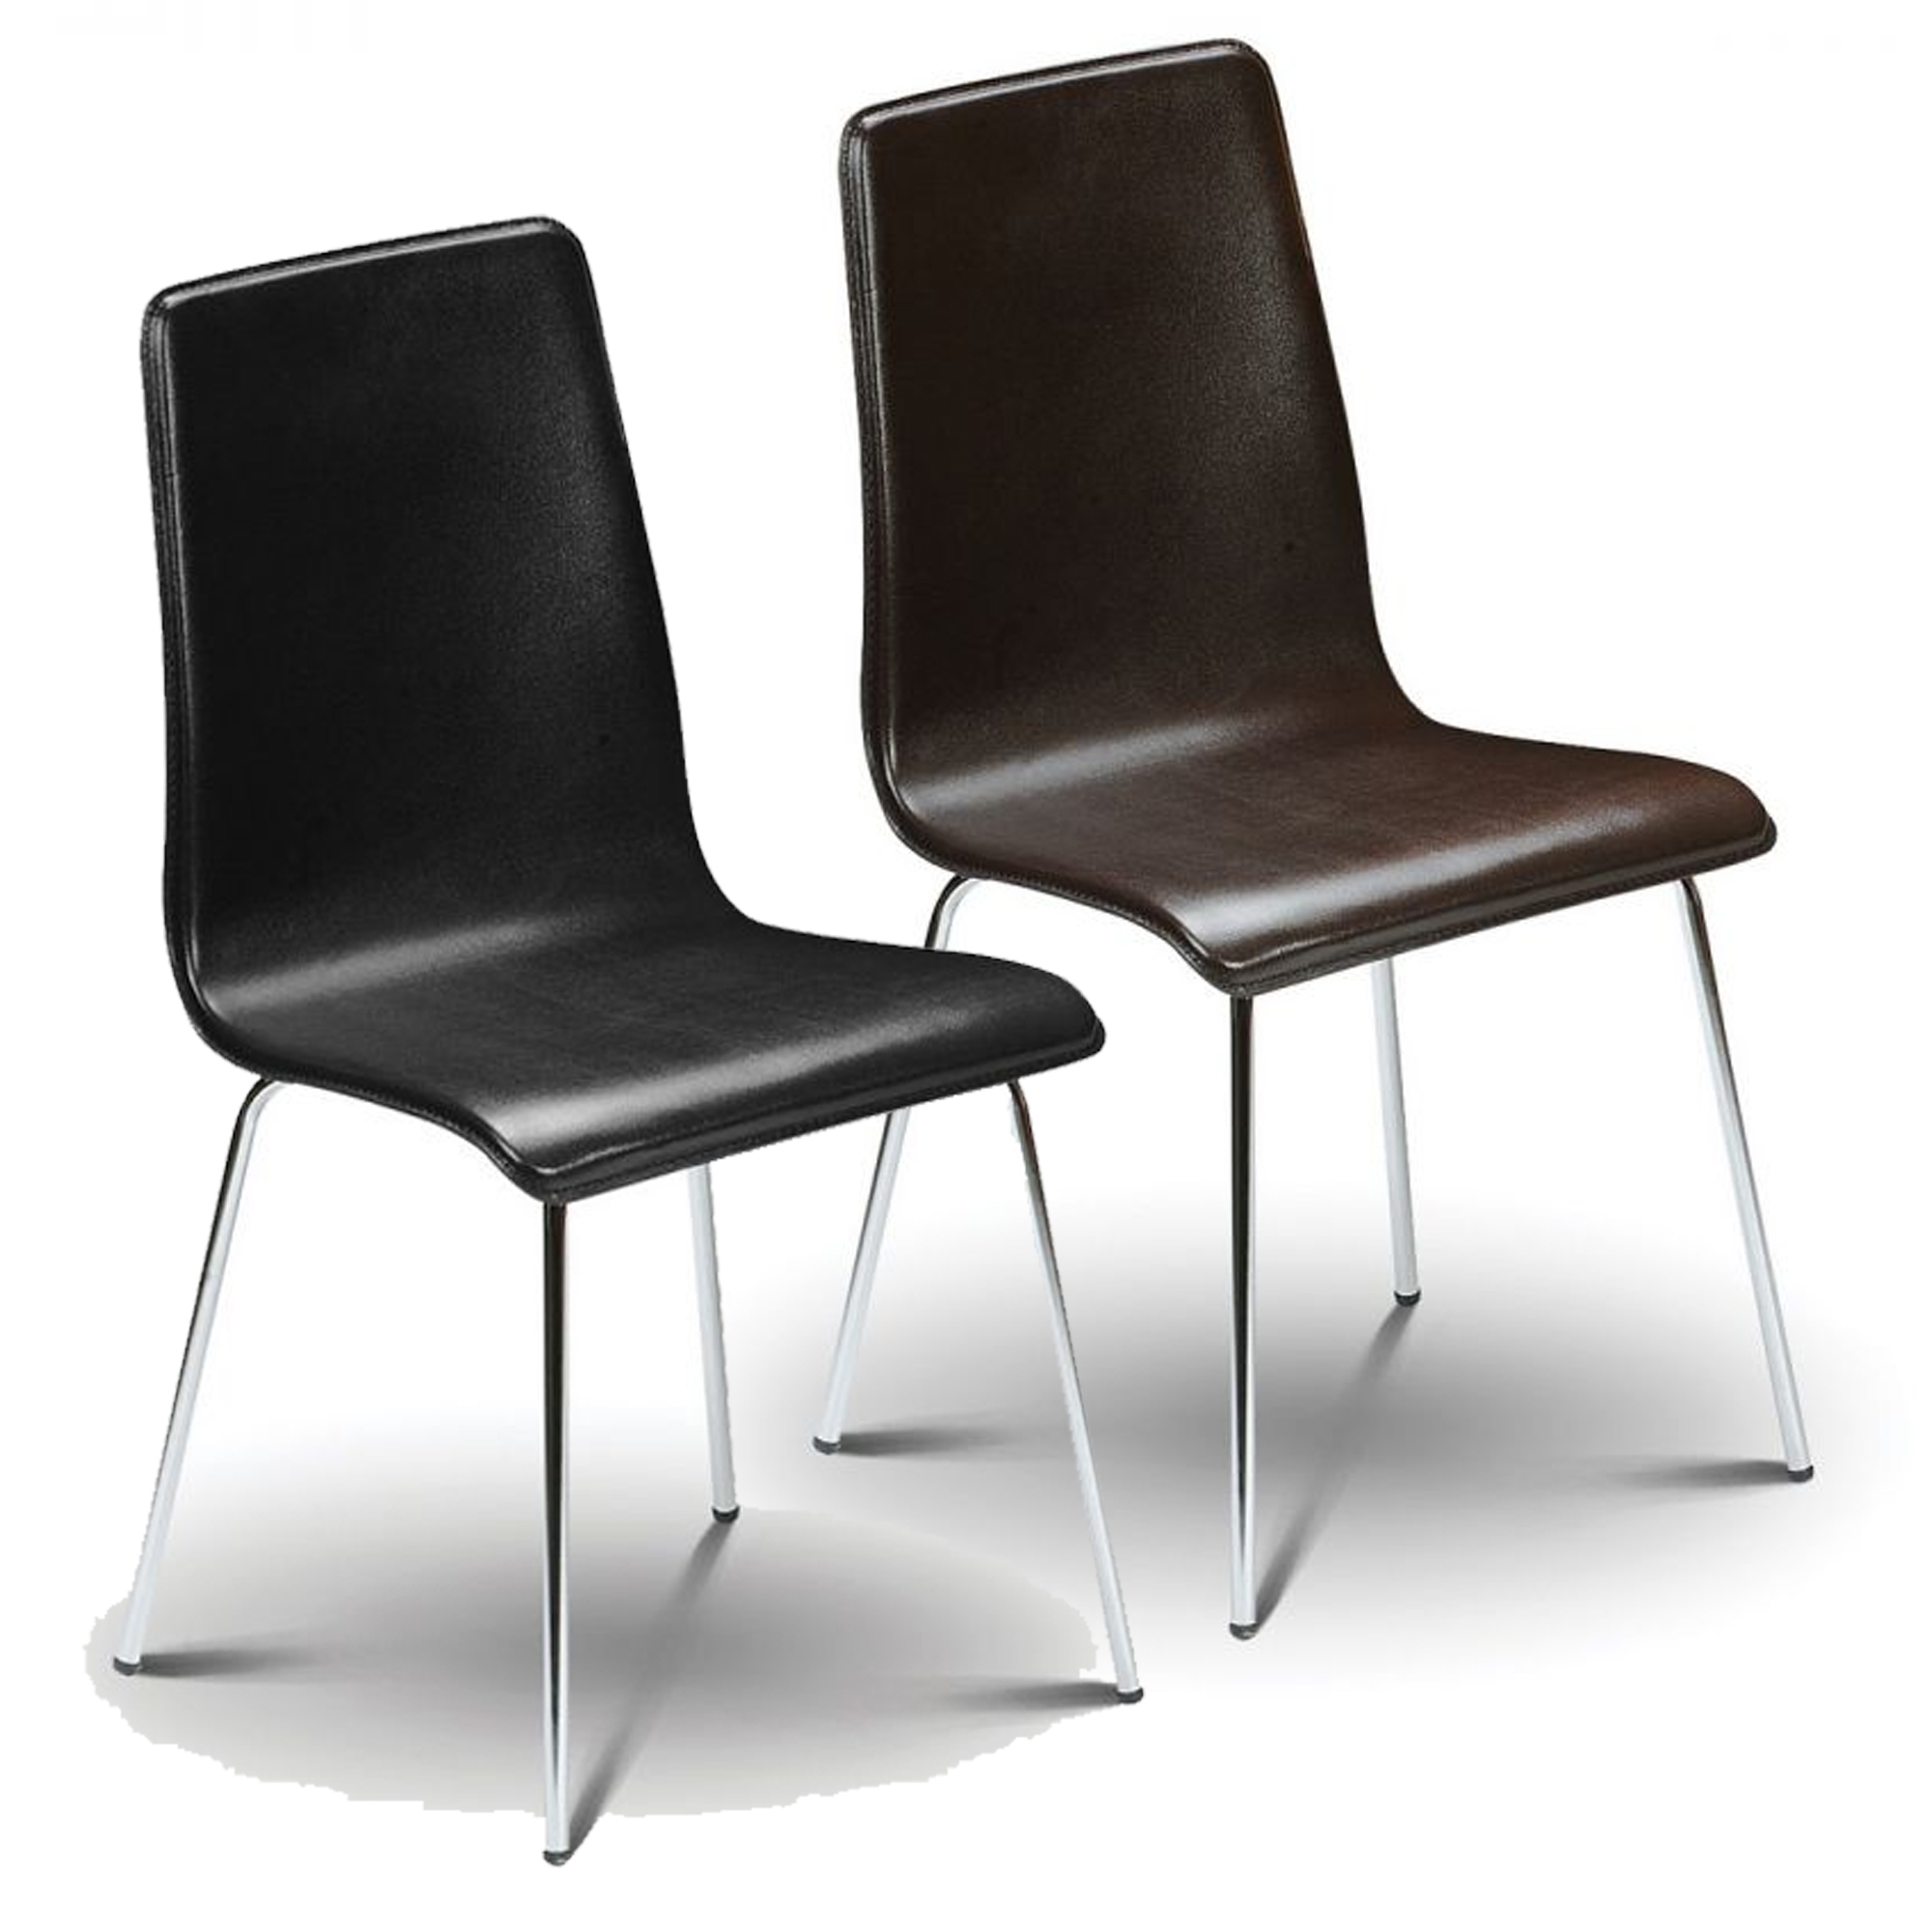 Prime Mandy Leather Dining Chair Bralicious Painted Fabric Chair Ideas Braliciousco